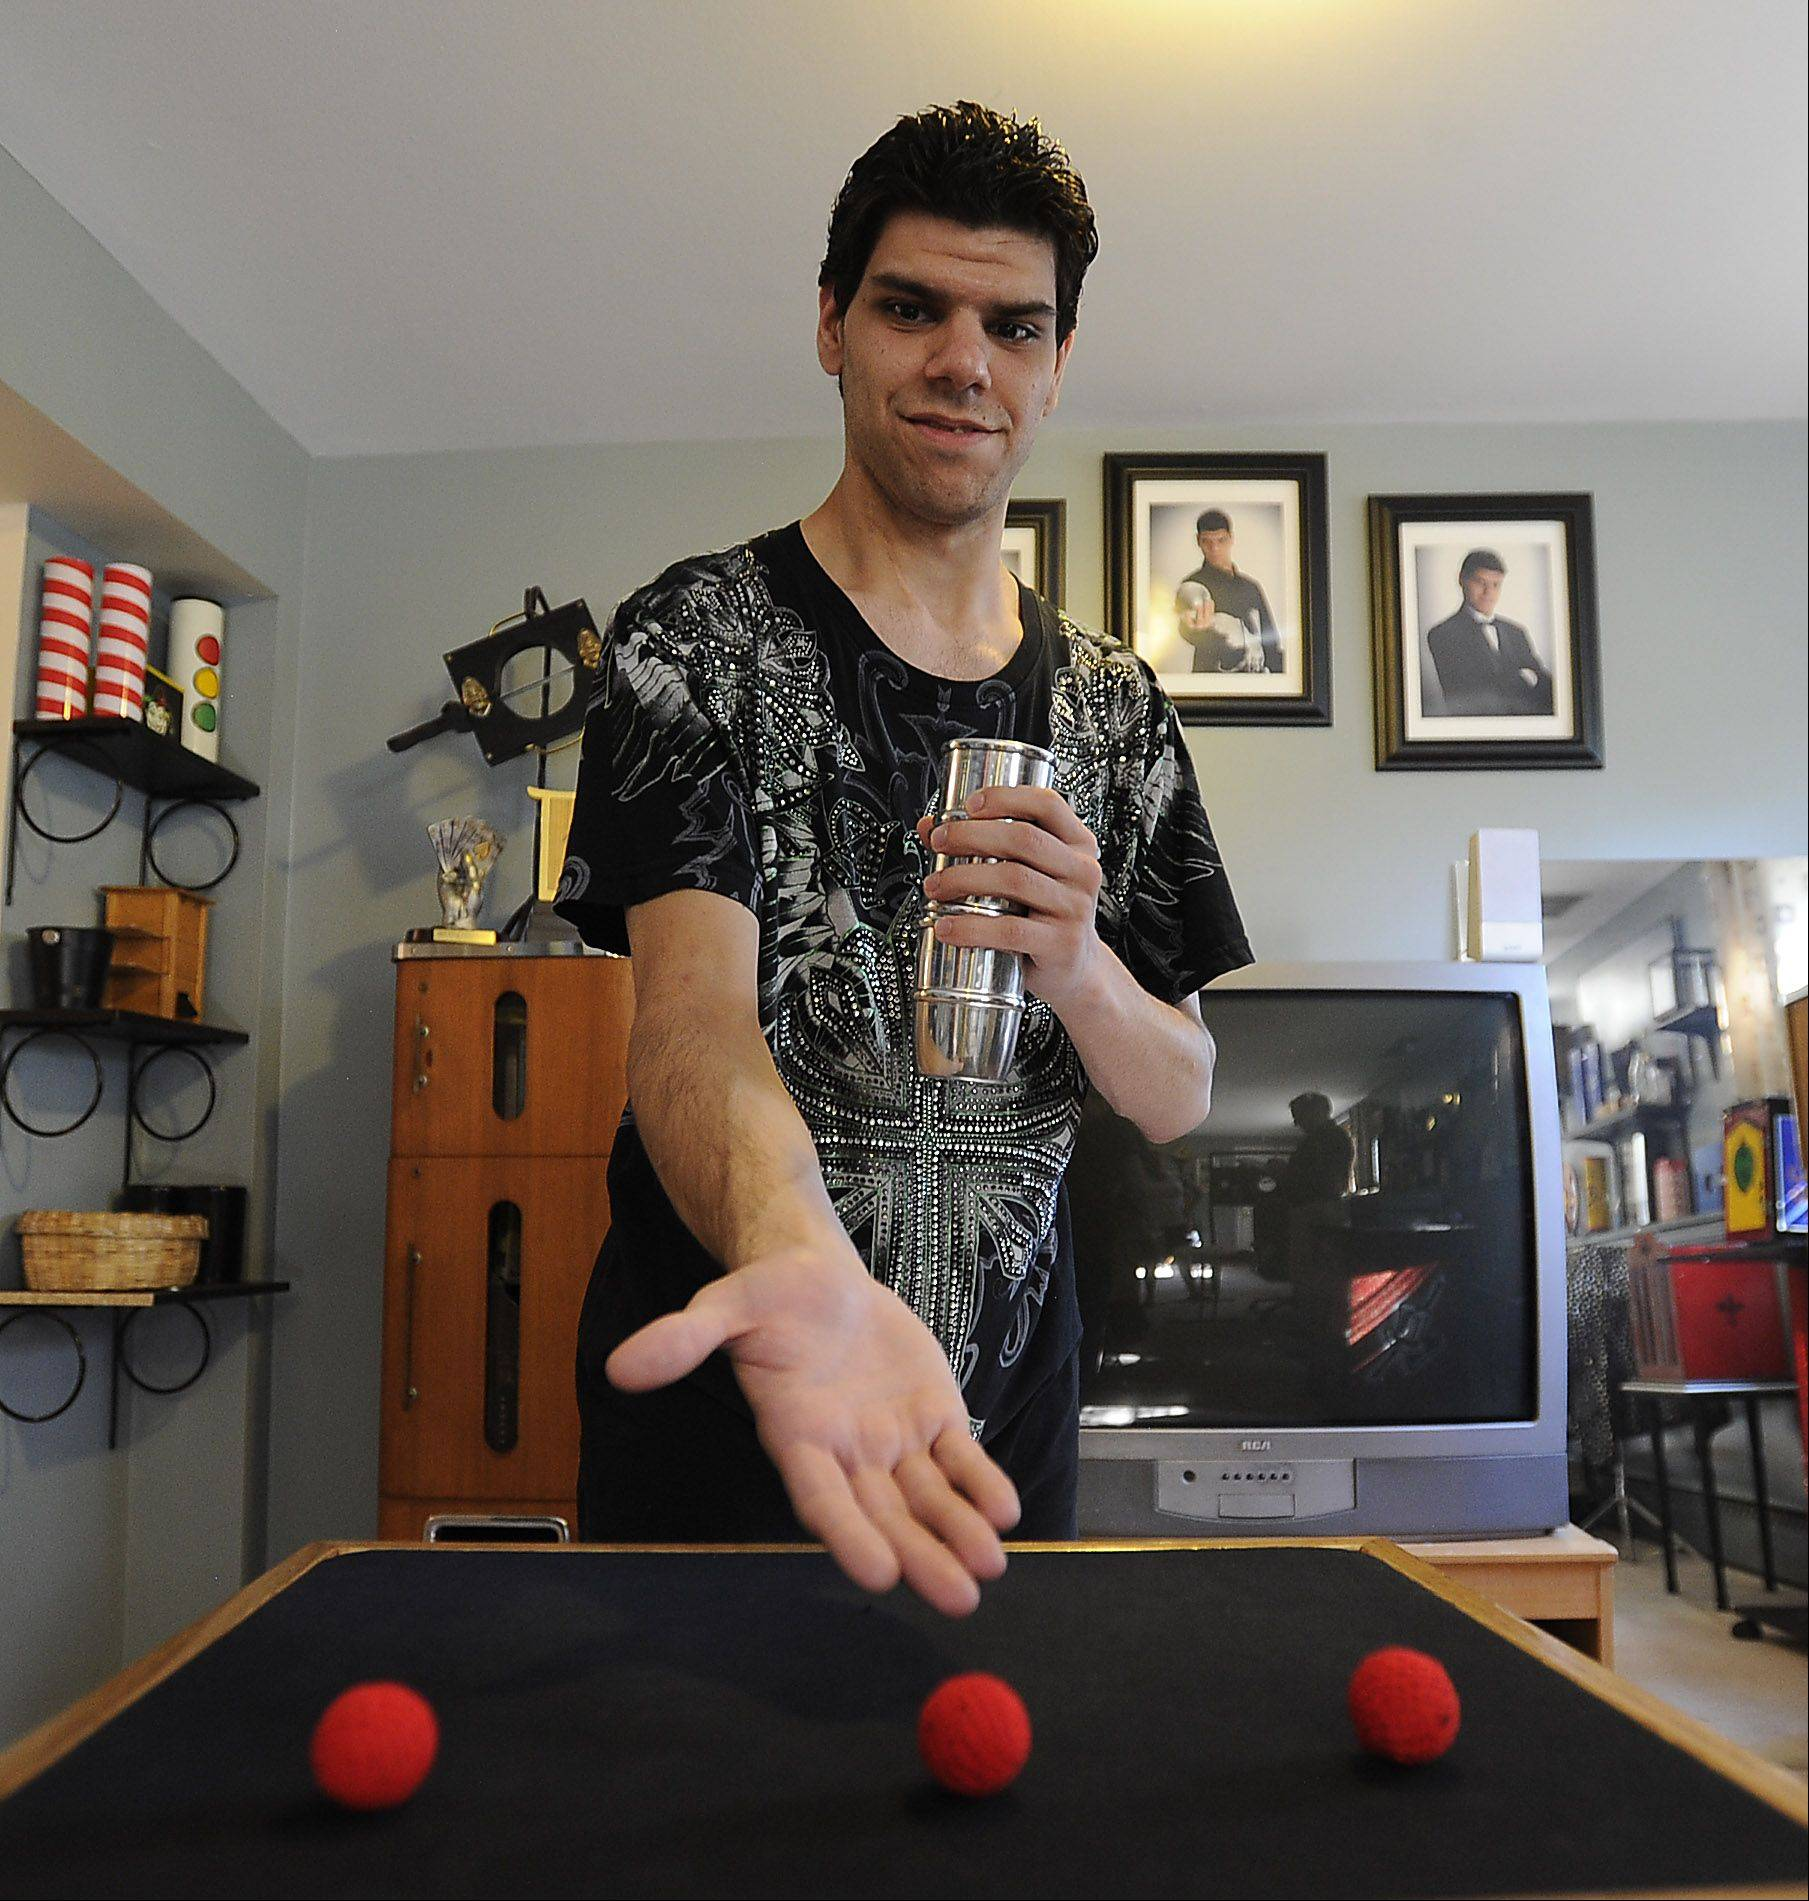 Hundreds of hours spent watching VHS tapes of magician Paul Lee helped Trent Rivas of Des Plaines master this hidden ball trick despite mental and physical disabilities.